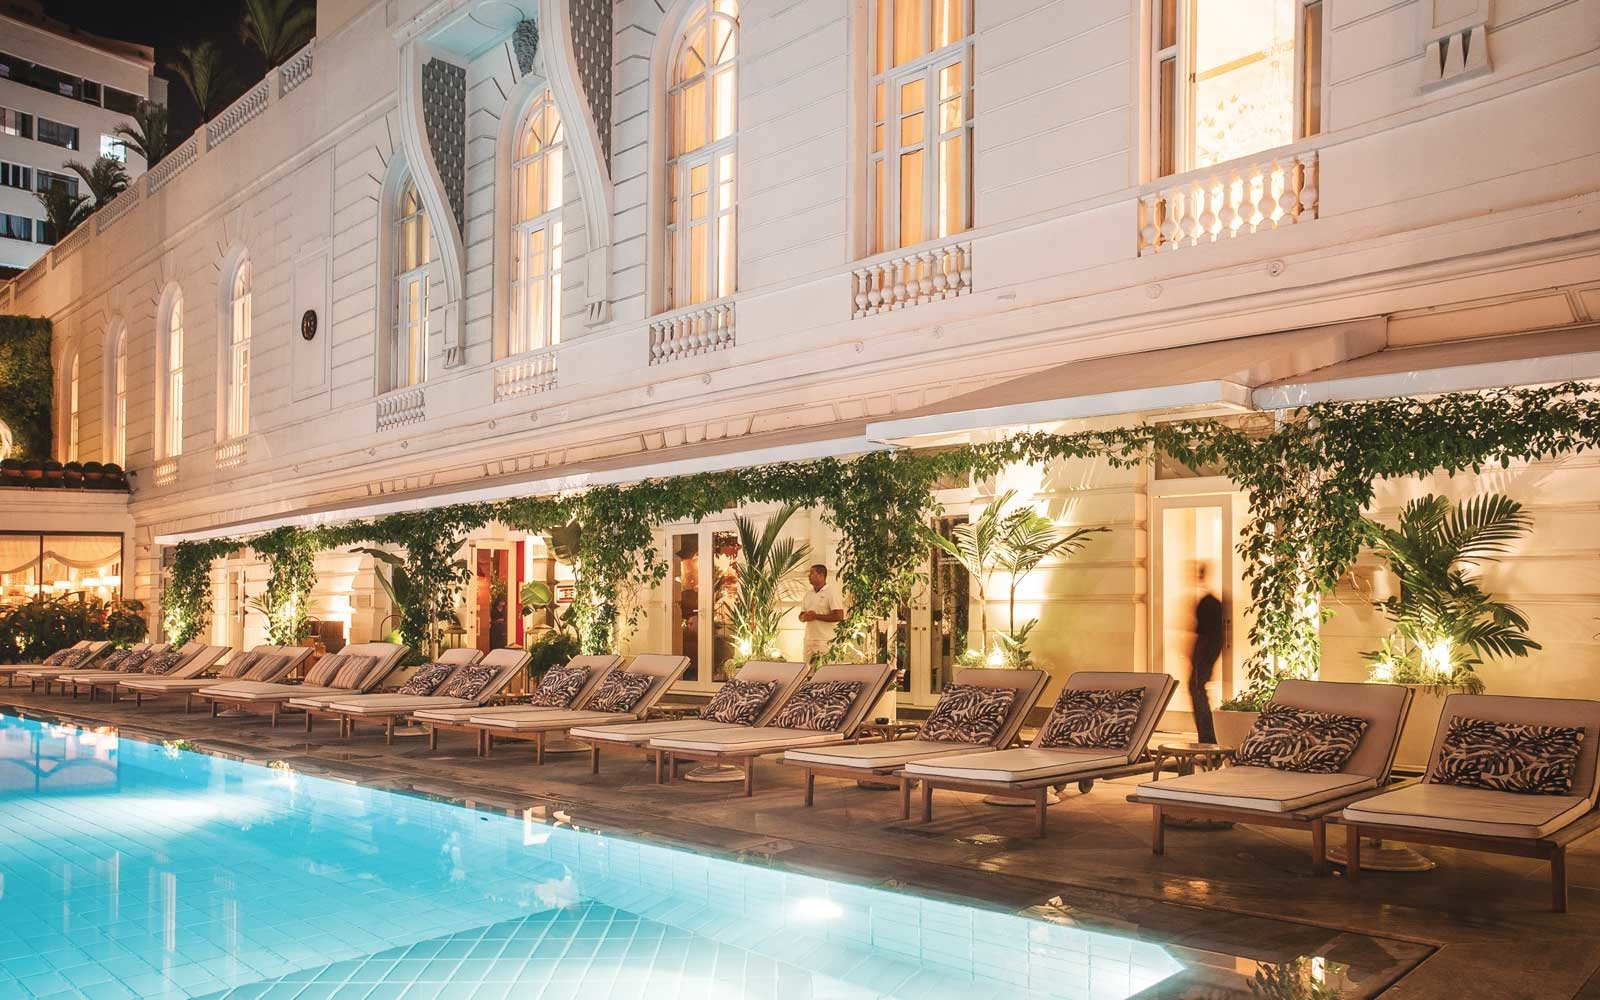 Pool at the Belmond Copacabana Palace